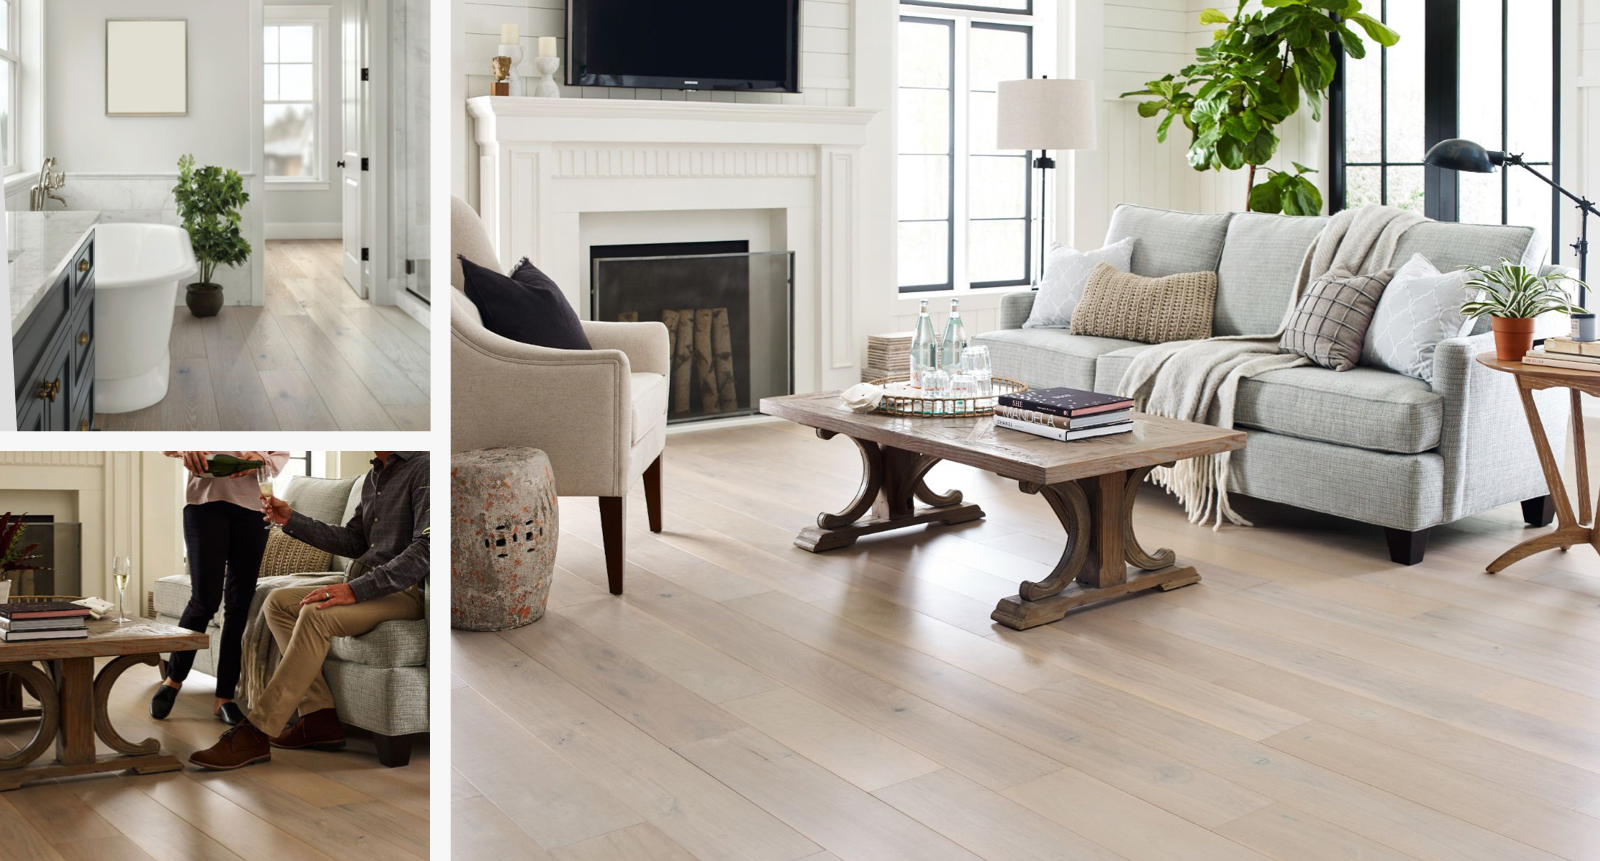 Floorte waterproof hardwood flooring for your home | Bassett Carpets